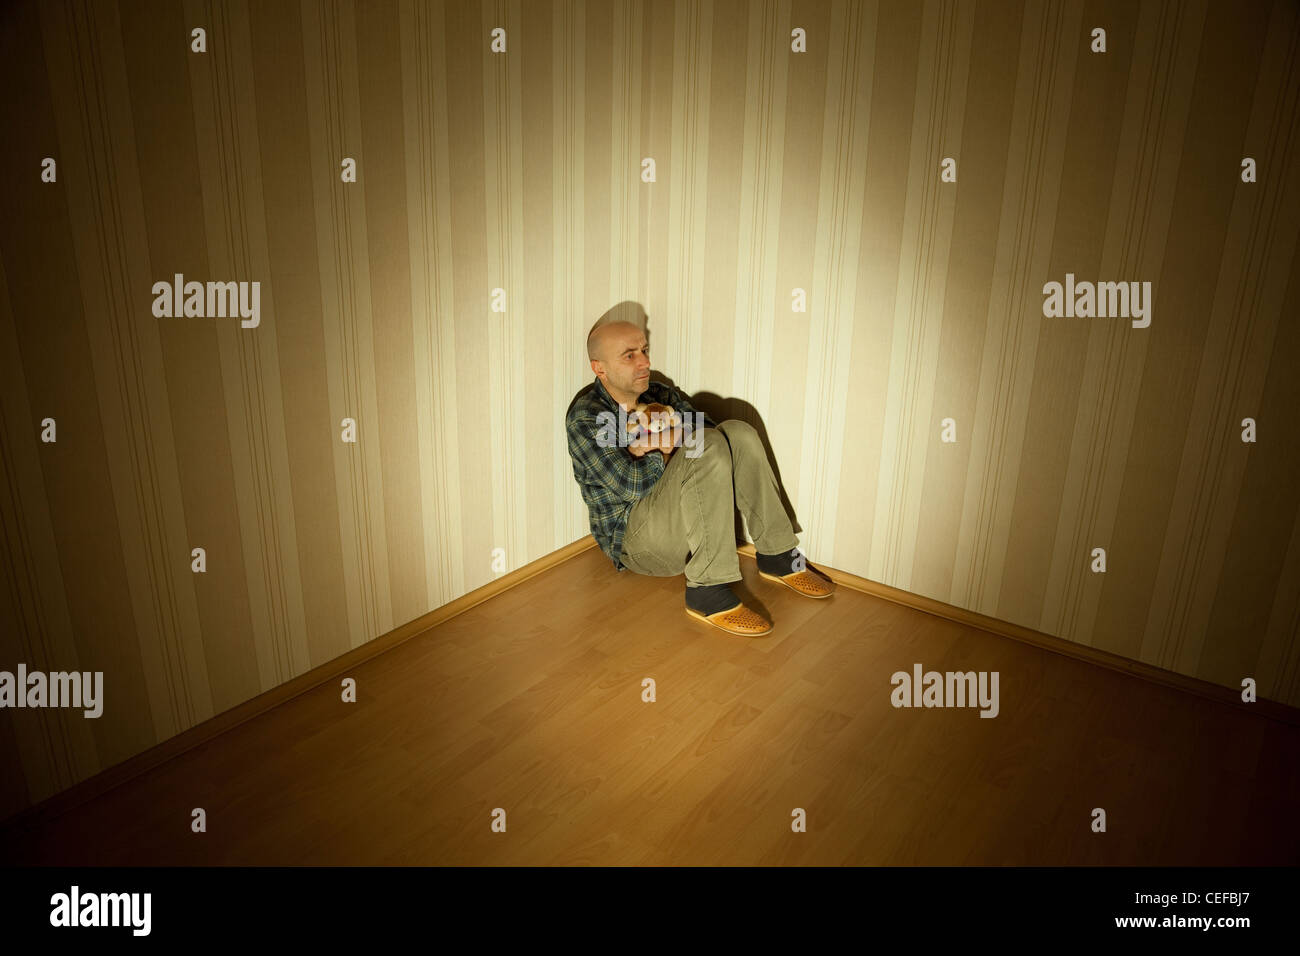 lonely man in angle ill on depression - Stock Image